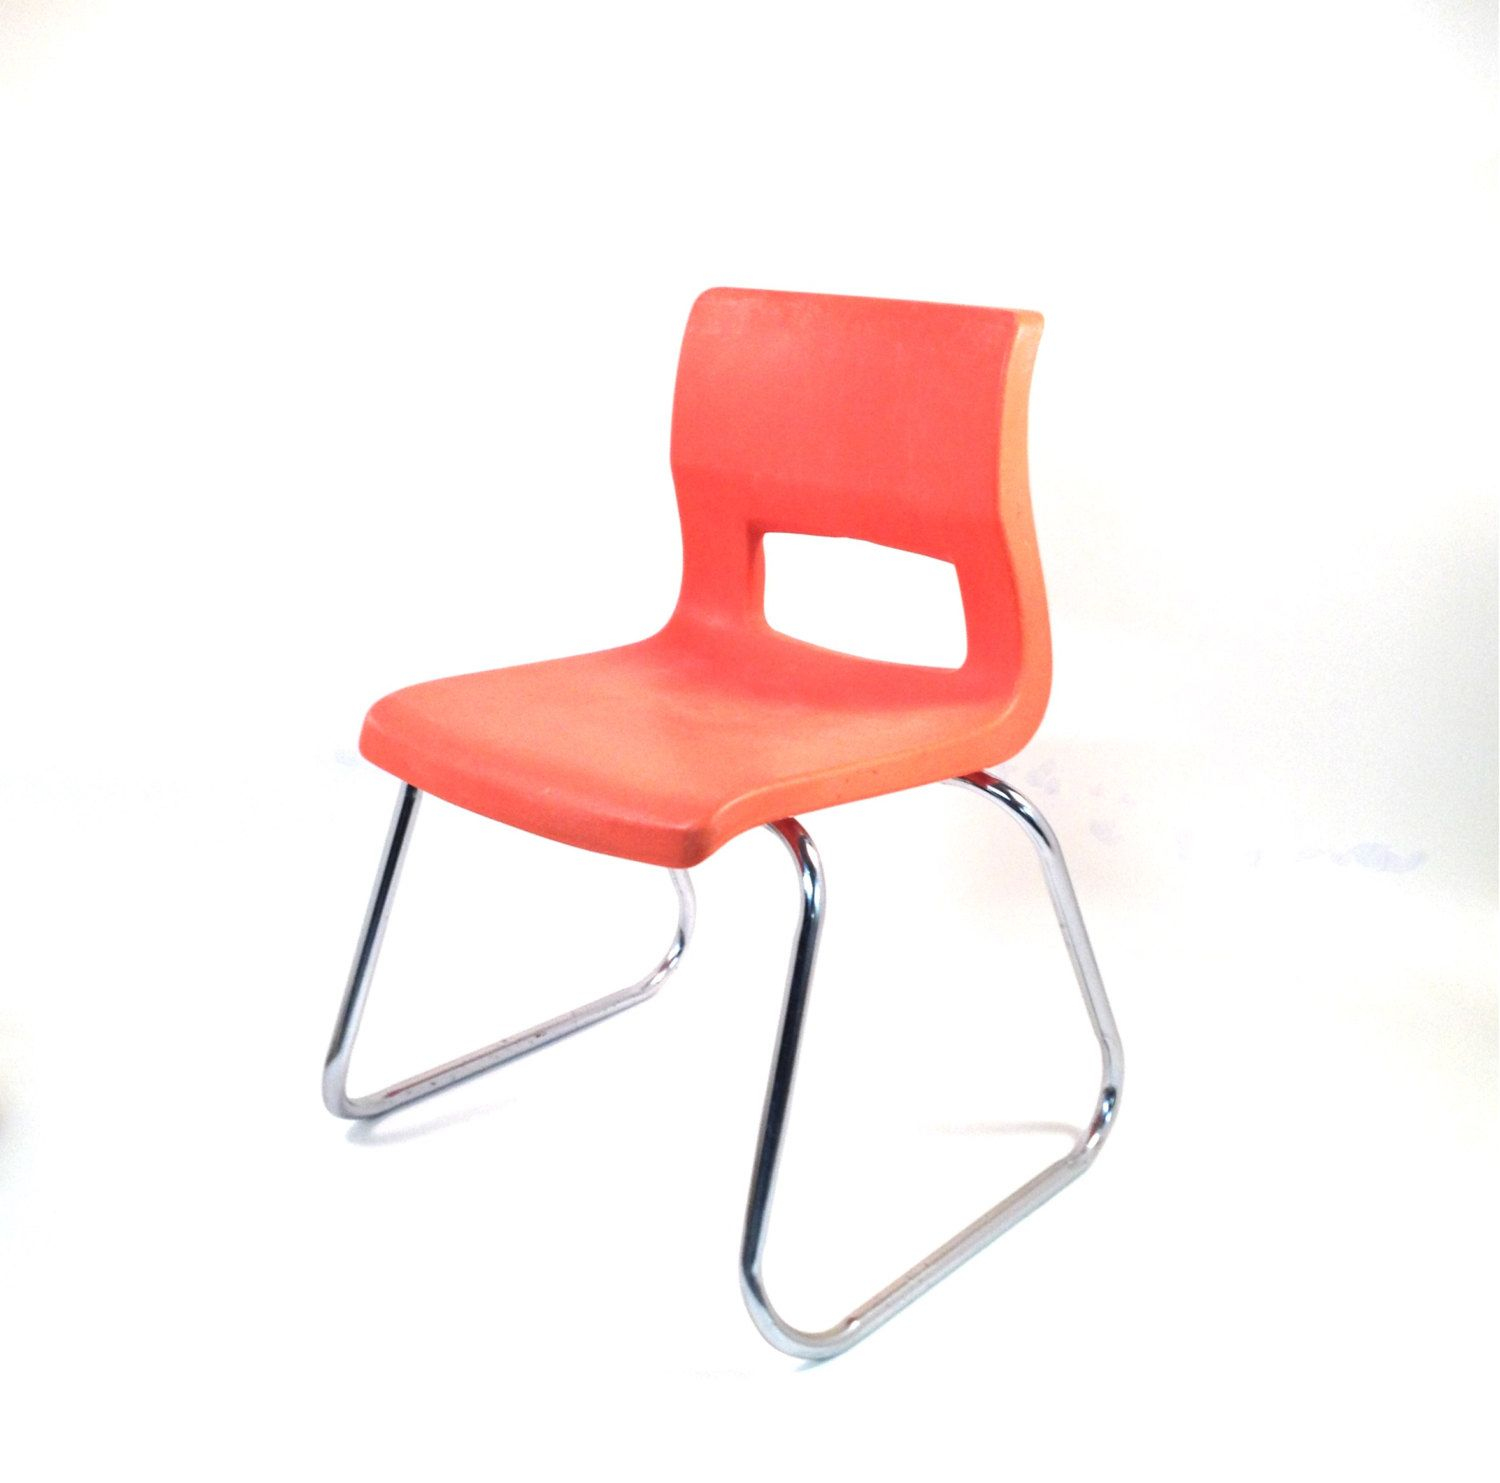 Mid Century Kids Chair In Orange / Metal Chrome / Molded Plastic / Peabody  School Chair